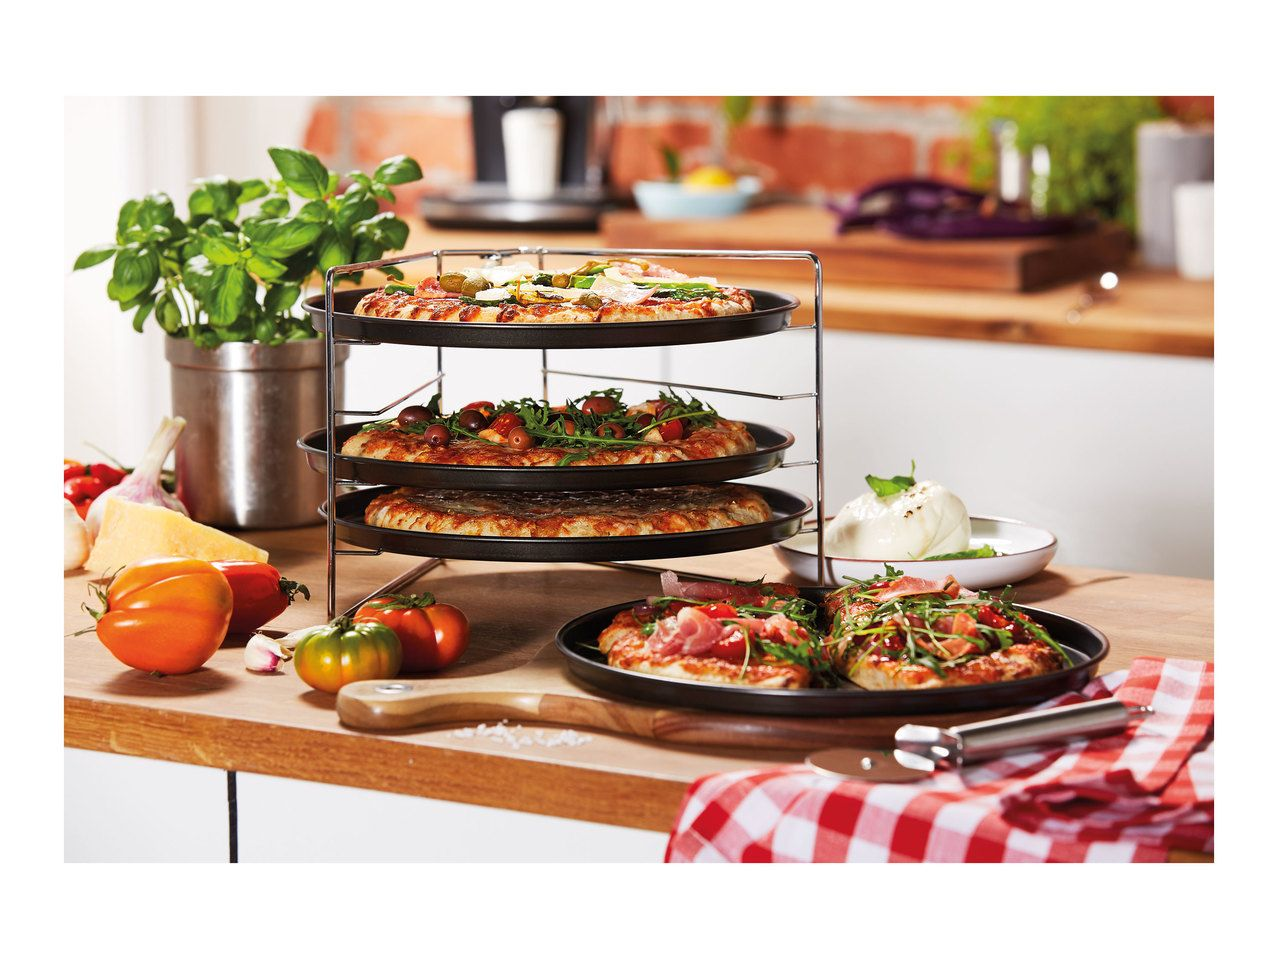 Lidl launches clever four-tier pizza oven for £7.99